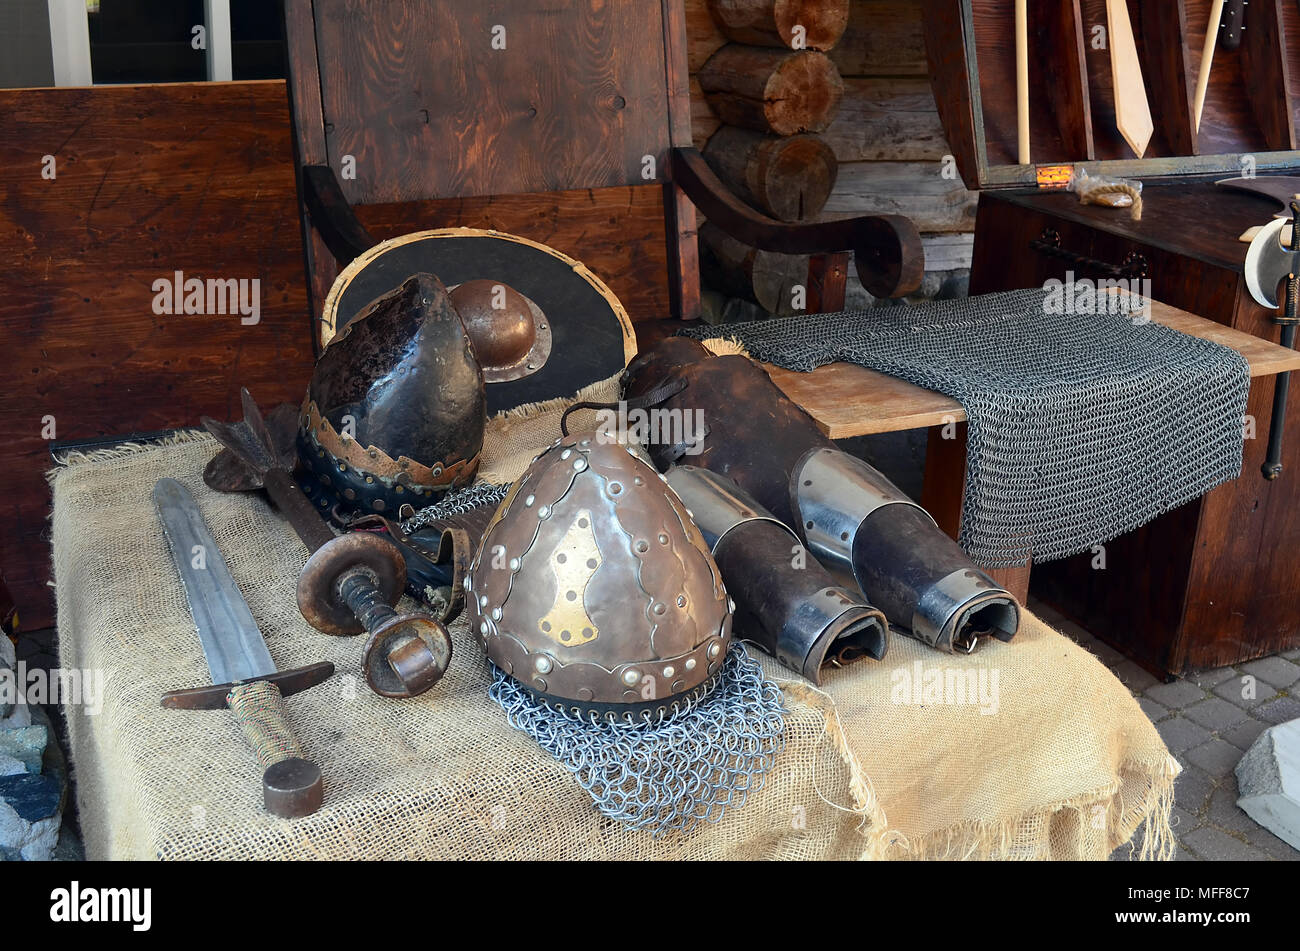 The armor of the Slavic Knight. Helmet, chain mail, sword and shield - Stock Image